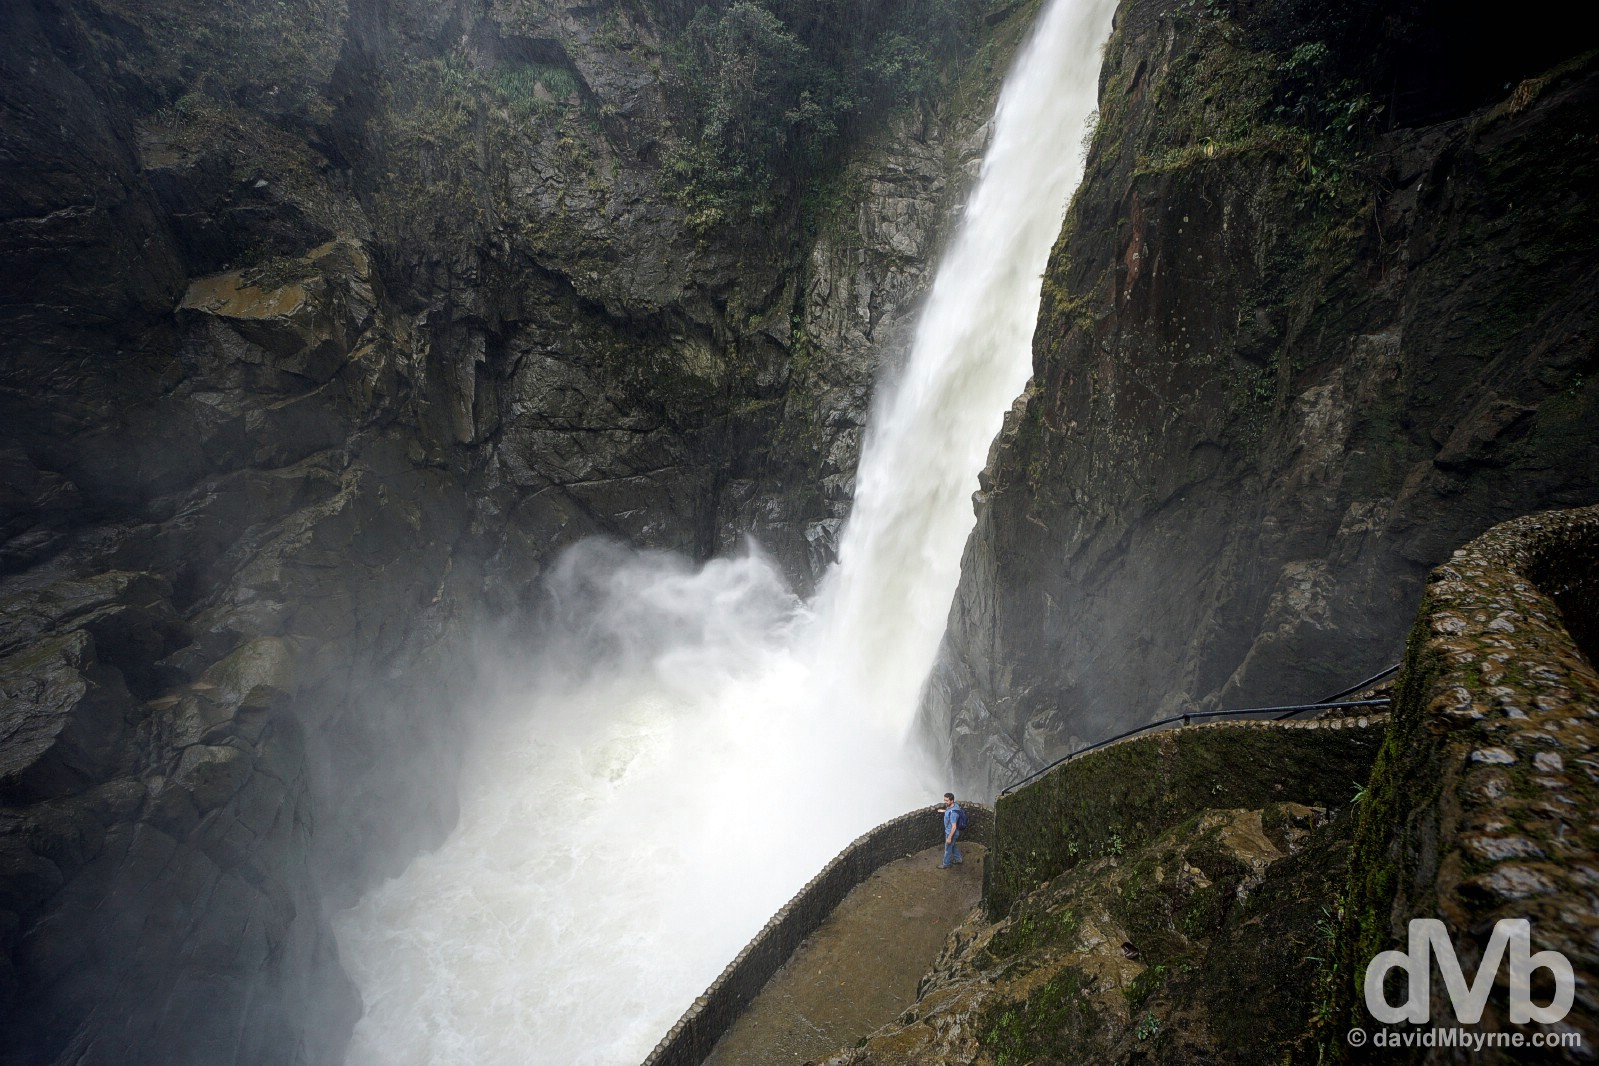 Pailon del Diablo (Devil's Cauldron), Pastaza Valley, Ecuador. July 9, 2015.